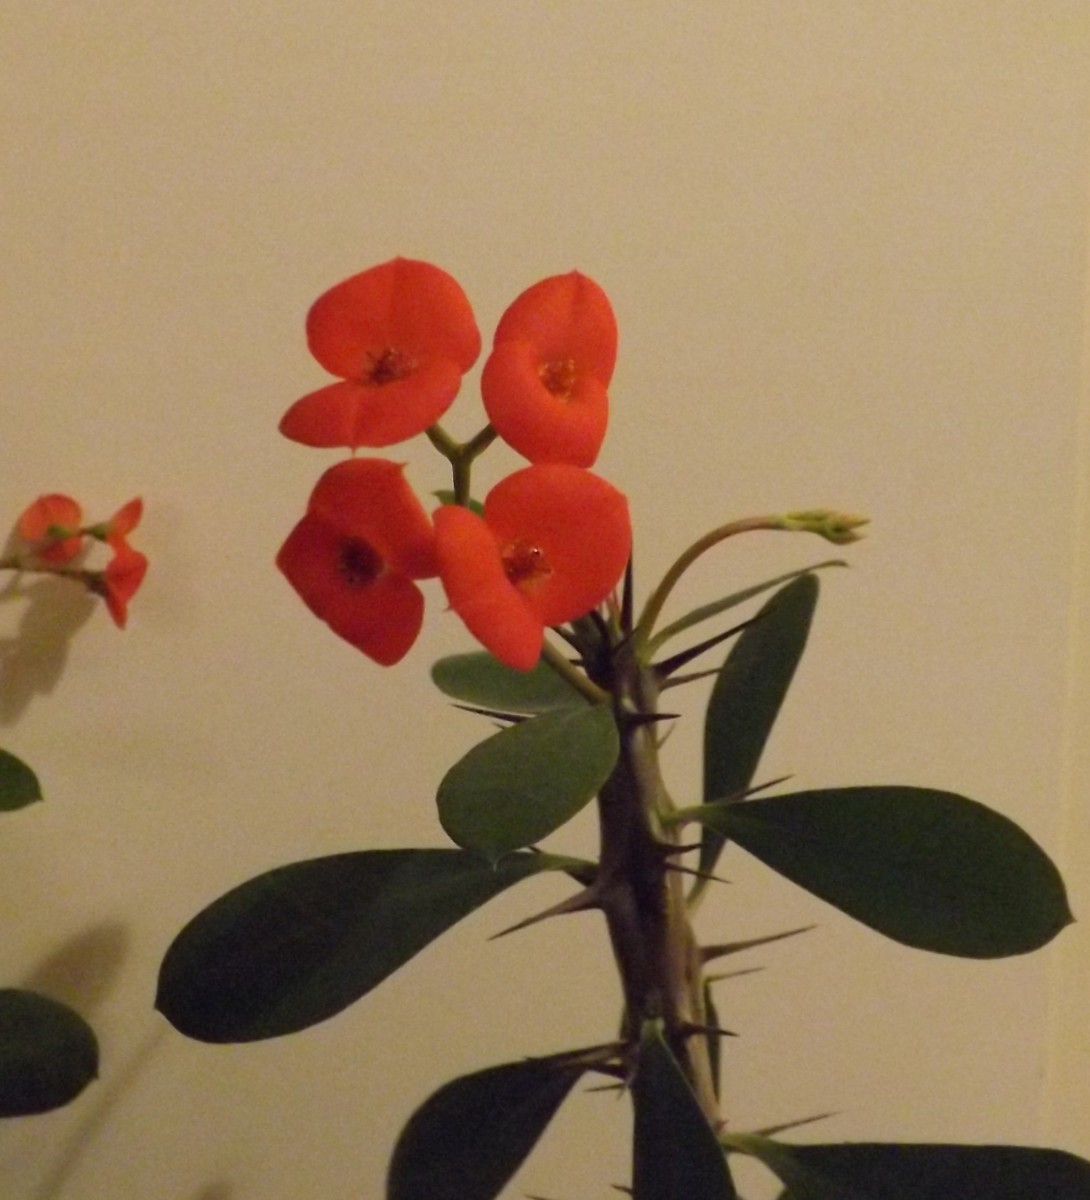 Crown of Thorns: An Interesting  Houseplant